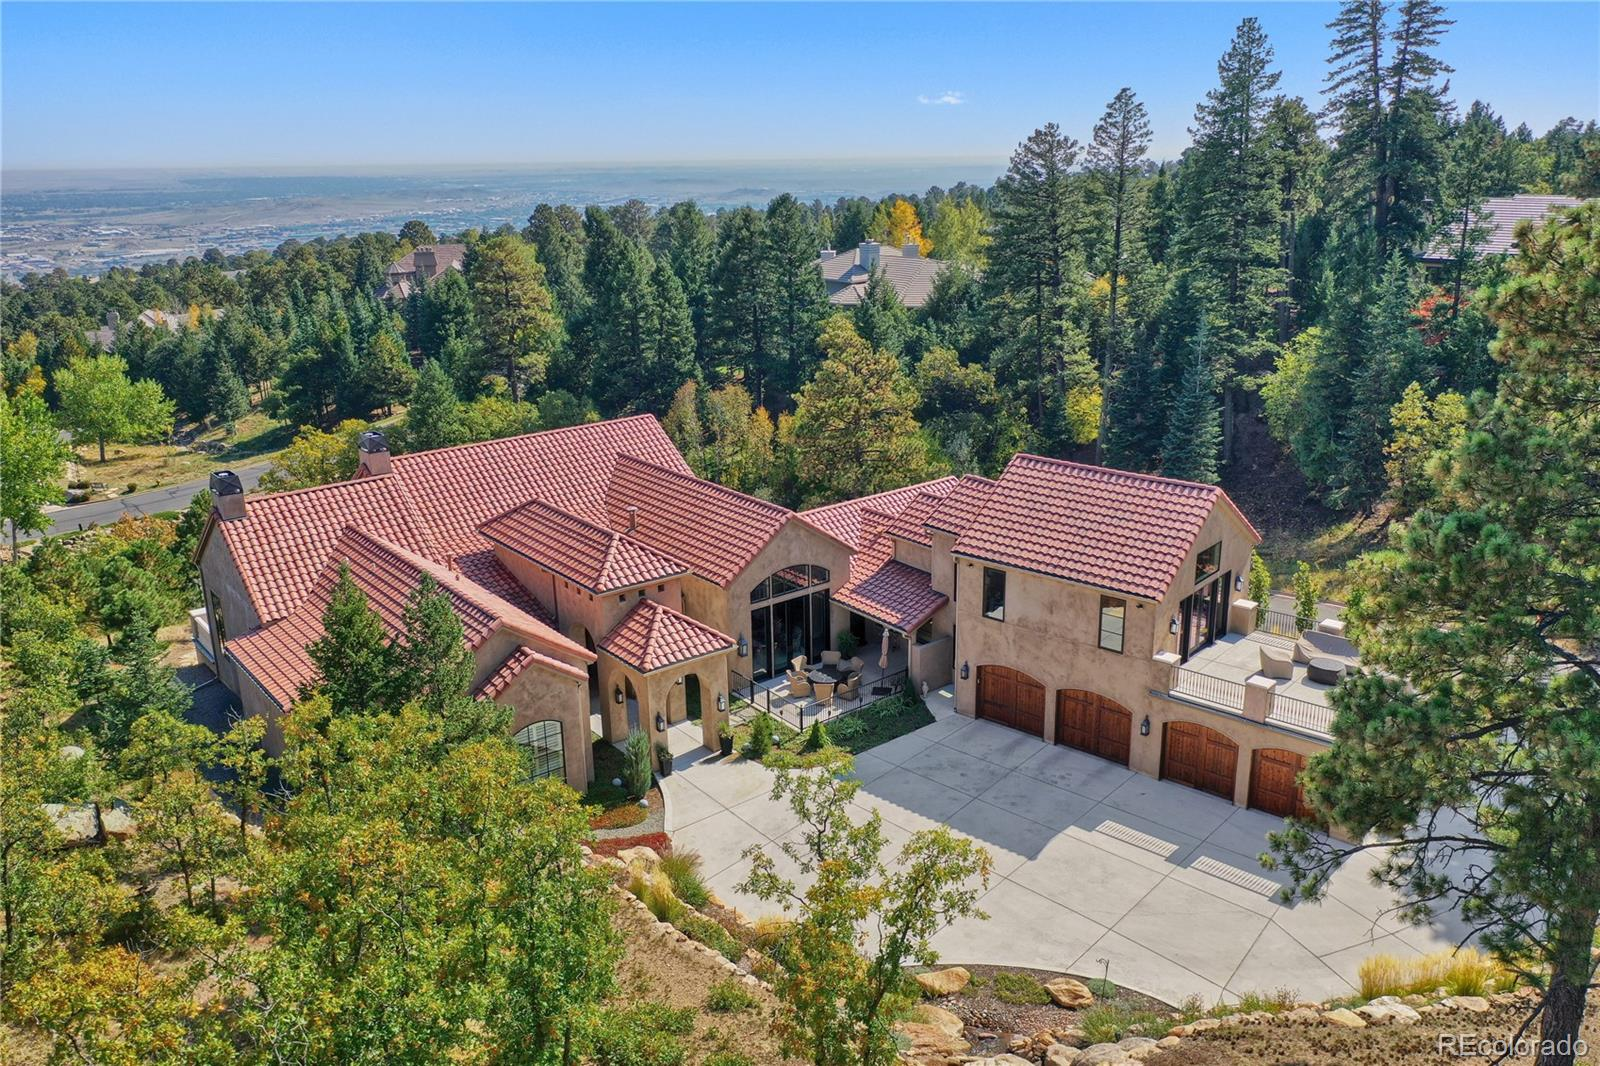 Custom built w/majestic mountain & city views. Special features include wide-plank hardwood floors on the main & upper level; solid alder doors; beamed peaked ceilings; crown moldings; 5 patios w/a total of 3,282 square feet; amazing light fixtures (some antique & vintage);all bedrooms are en-suite; incredible landscaping w/18' waterfall; private office on upper level has full bath & a private view patio that overlooks the waterfall; wine cellar w/bricked beamed ceiling & wrought iron entry doors. The focal point of the home is the stunning great room that features a beamed peaked ceiling, massive stone fireplace & 4 sets of French doors that access the back veranda to a majestic city view. Adjoining the great room, the gourmet kitchen features a big center isle w/seating, slab granite counters, extra-large walk-in pantry & a professional grade gas stove w/two ovens & a gas cooktop w/10 burners! Other kitchen appliances include 2 dishwashers, wine fridge, stand-alone freezer, stand-alone refrigerator, pot-filler & ice maker. The kitchen opens to a cozy hearth area that accesses the front courtyard w/majestic mountain views. The luxurious main level master opens to the back veranda & 12' ceilings w/crown molding, lovely fireplace w/gas logs & a huge walk-in closet w/two designer chandeliers. The sumptuous master bath enjoys slab granite countertops, an oversized shower w/2 shower heads & marble bench, jetted tub & a beverage station w/sink & fridge. The main level laundry room comes complete w/a computer work station, slab marble counters & a refurbished antique chandelier. The walkout lower has 10' ceilings & features a big family room w/fireplace, wet bar & the amazing wine cellar. The lower level has three spacious guest bedroom suites. All of these bedrooms open to a patio & all have private baths & walk-in closets. Custom window treatments throughout! 578 sq. ft. in the upper office is included in the main level square footage.